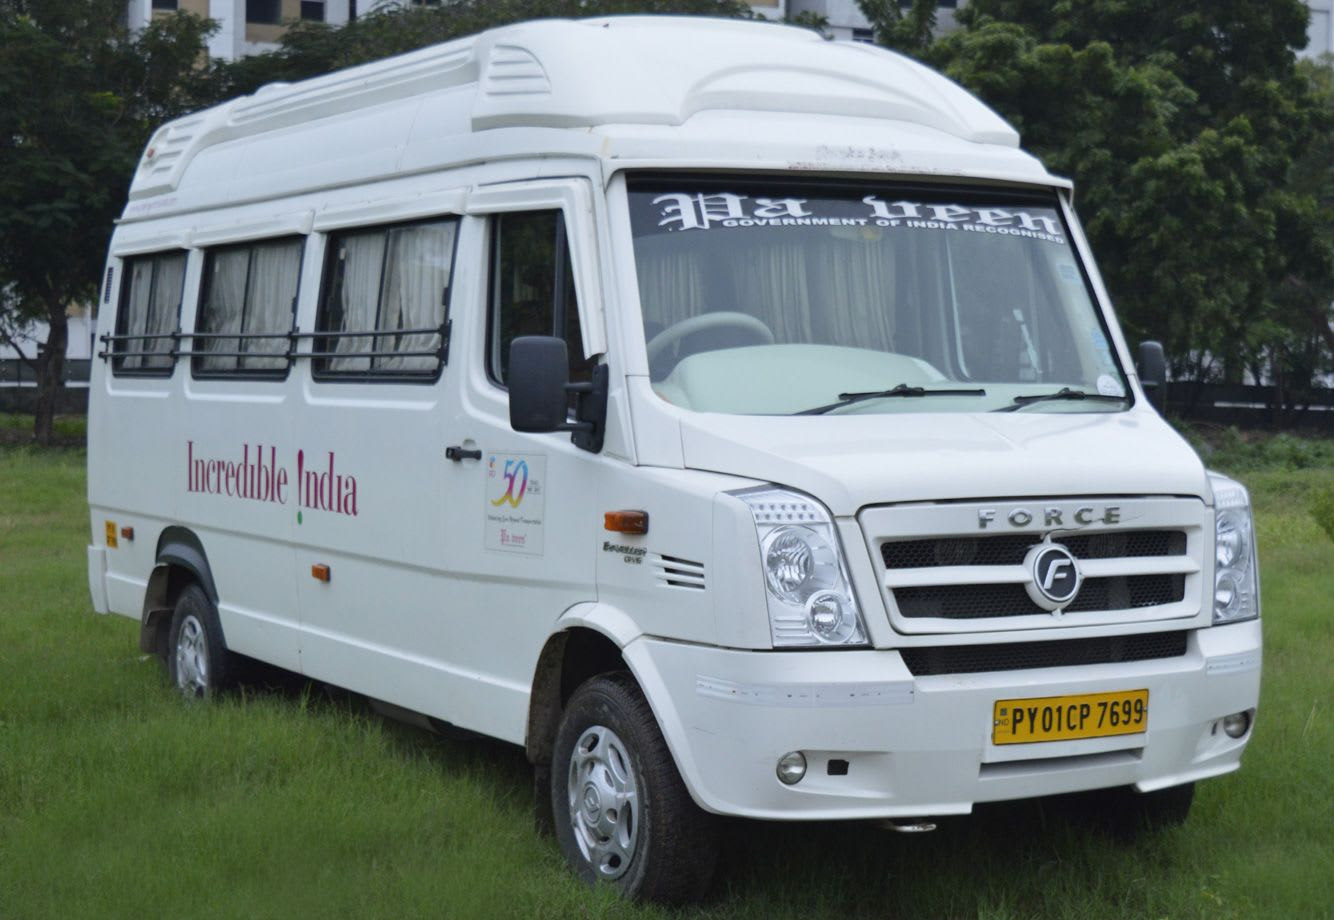 Chauffeured vehicles available in India